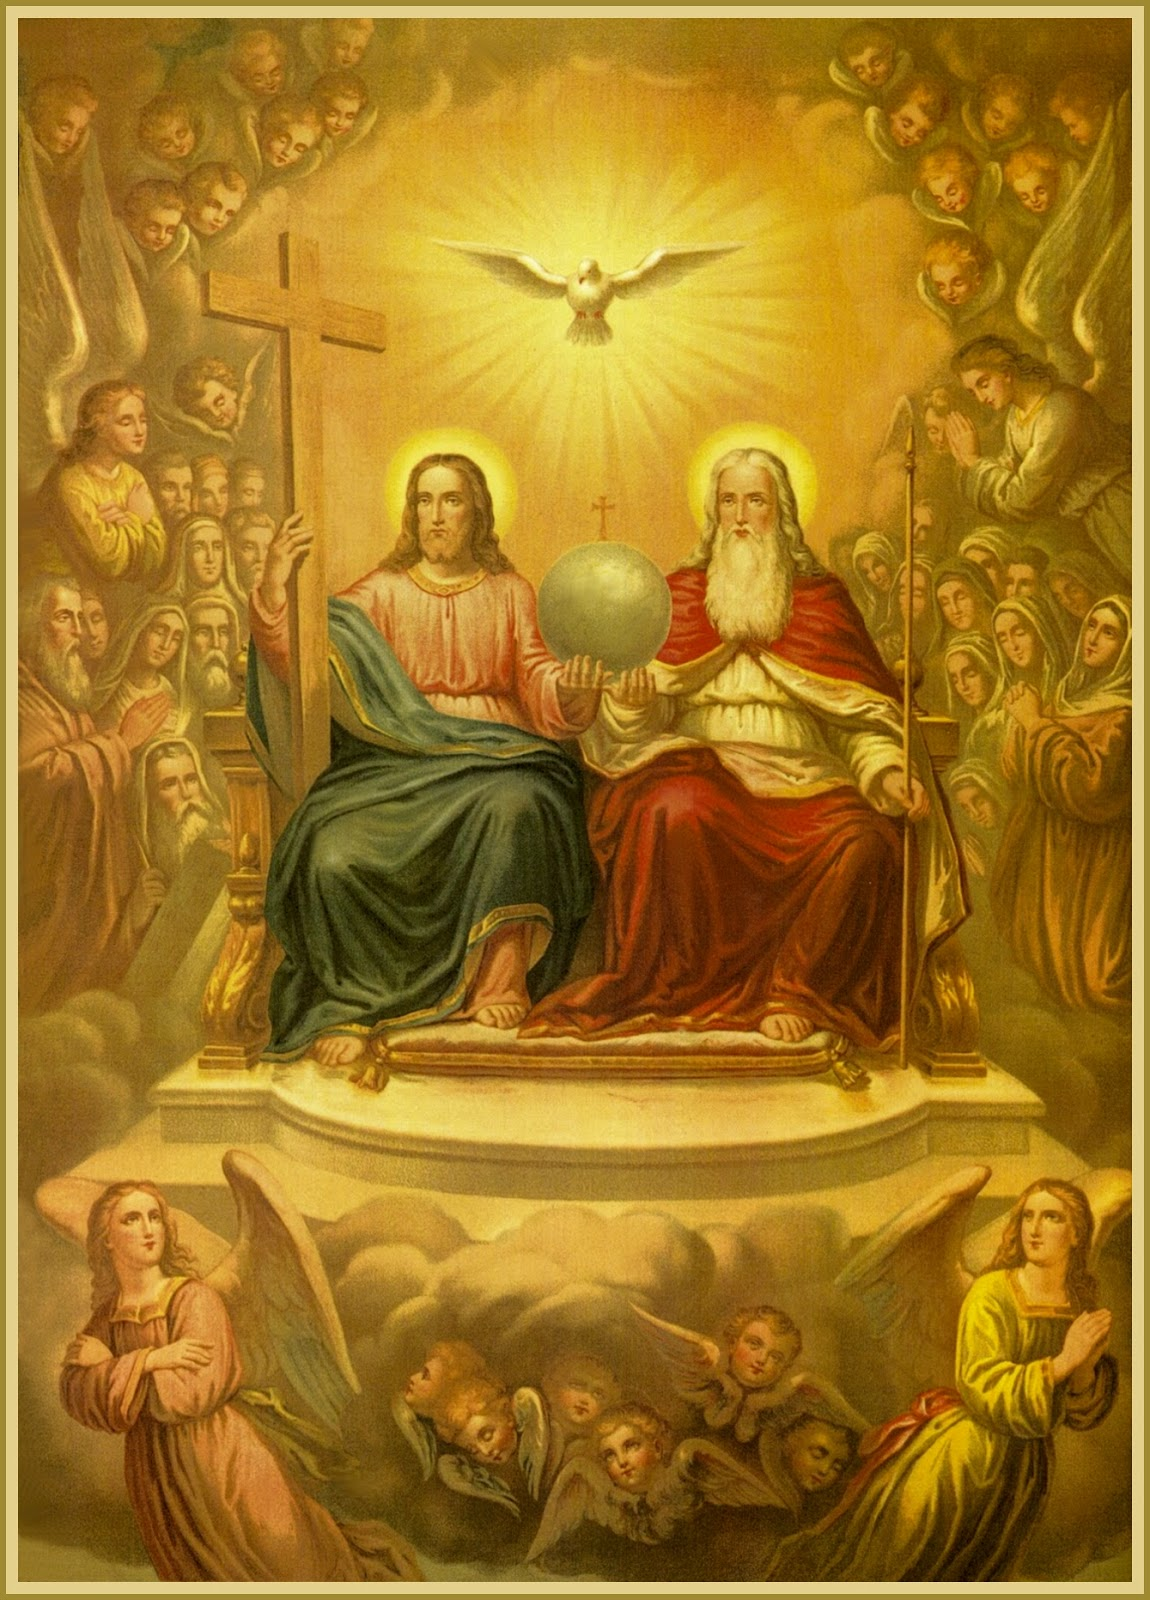 trinity and god The dogma of the trinity the trinity is the term employed to signify the central doctrine of the christian religion -- the truth that in the unity of the godhead there are three persons, the father, the son, and the holy spirit, these three persons being truly distinct one from another.